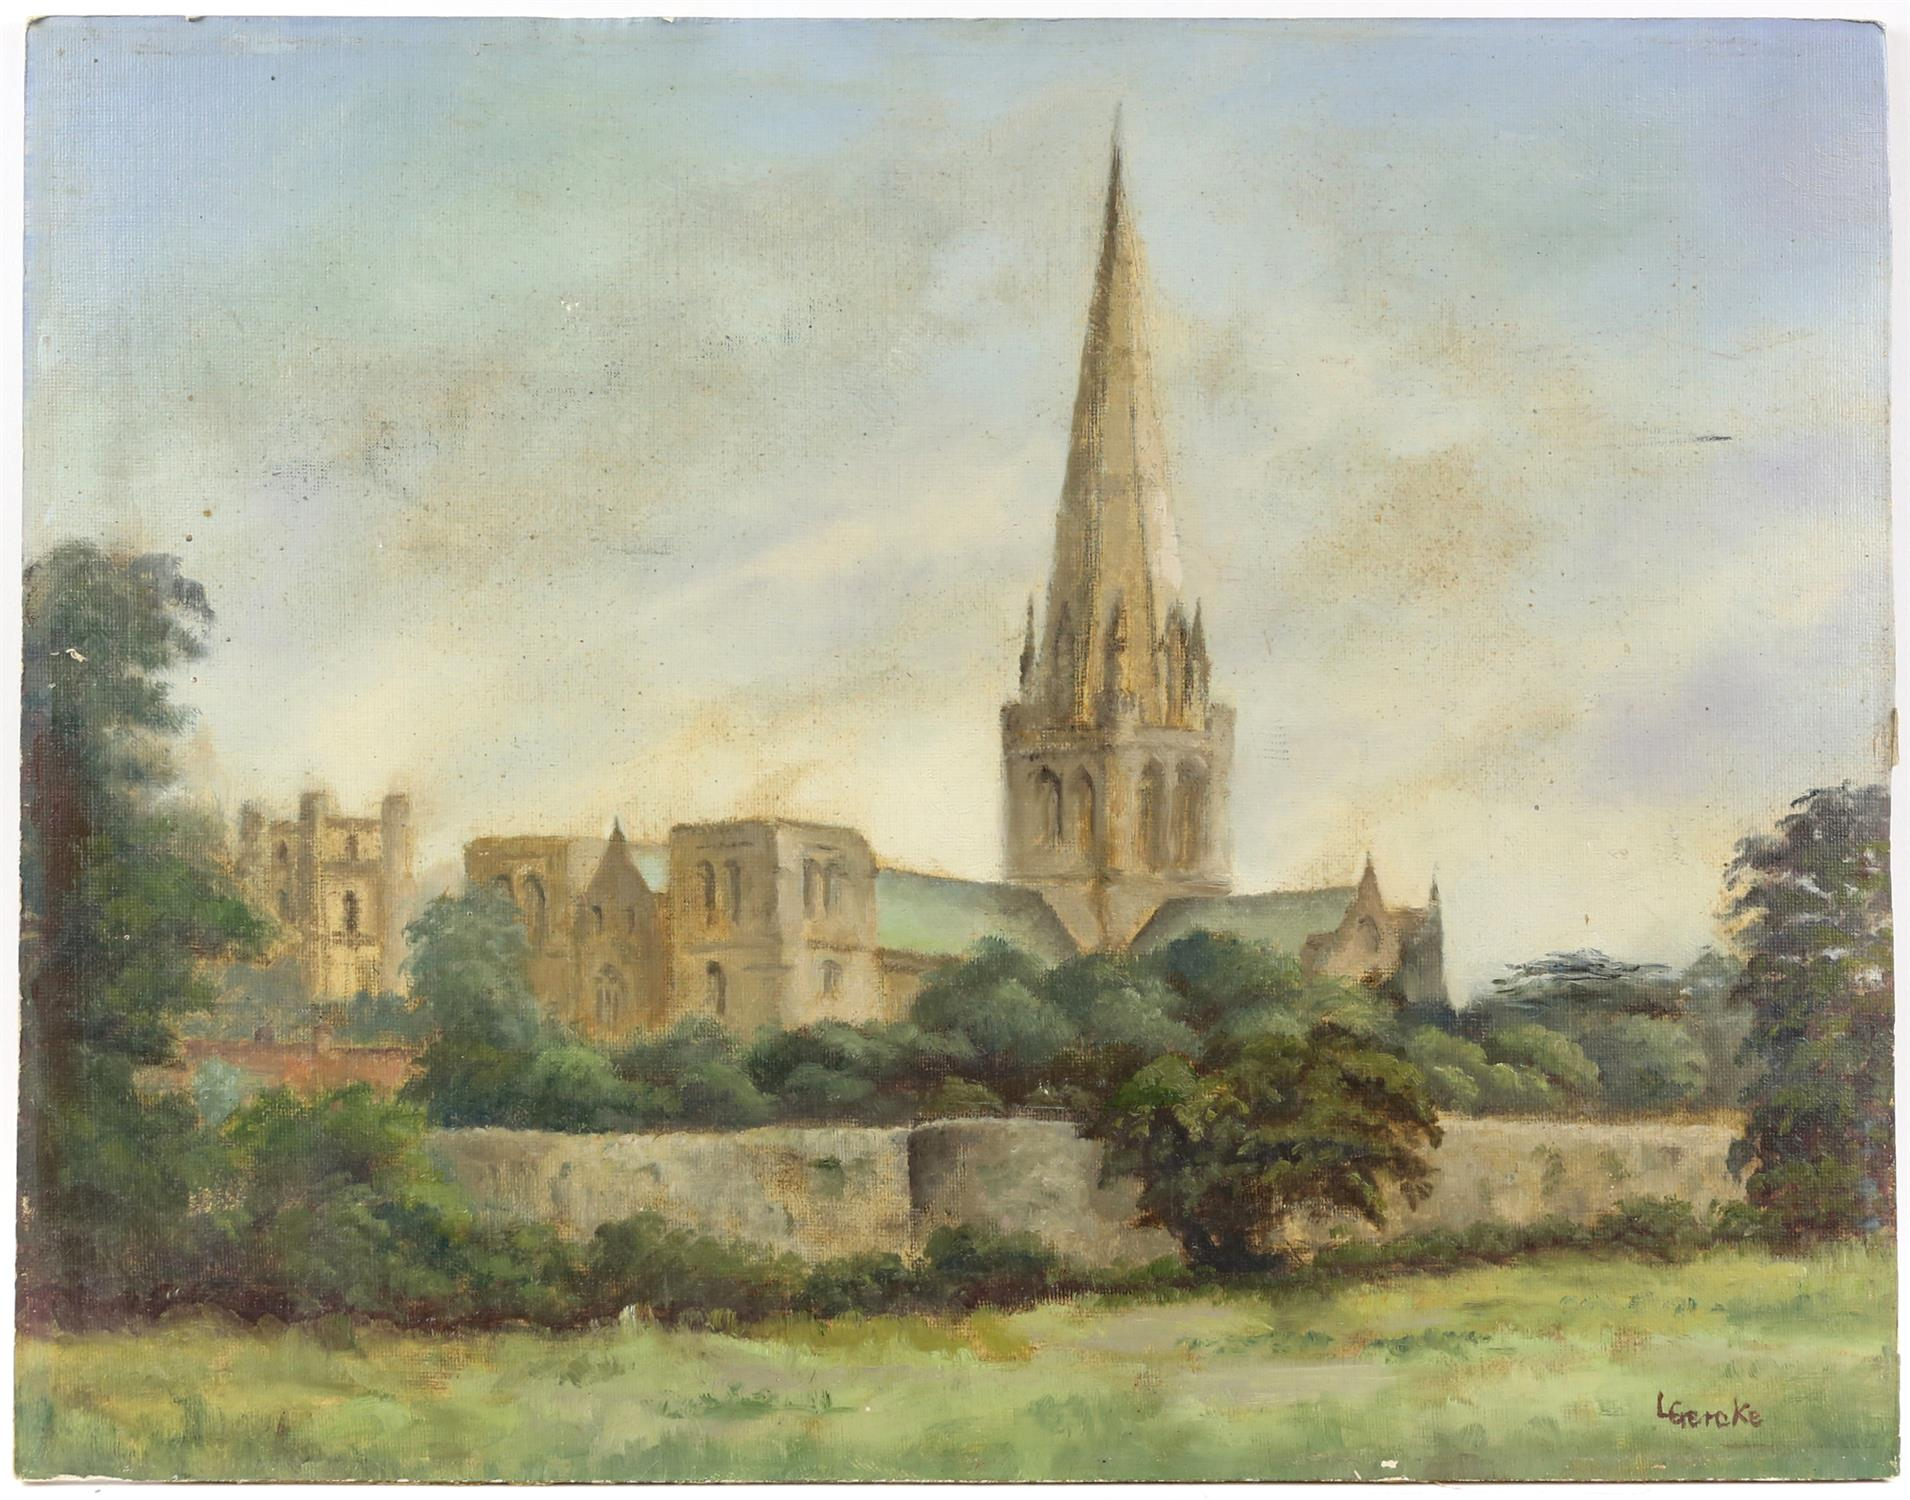 Lawrence Gercke, Chichester Cathedral, oil on canvas board, signed. 35 x 45cm. Along with a